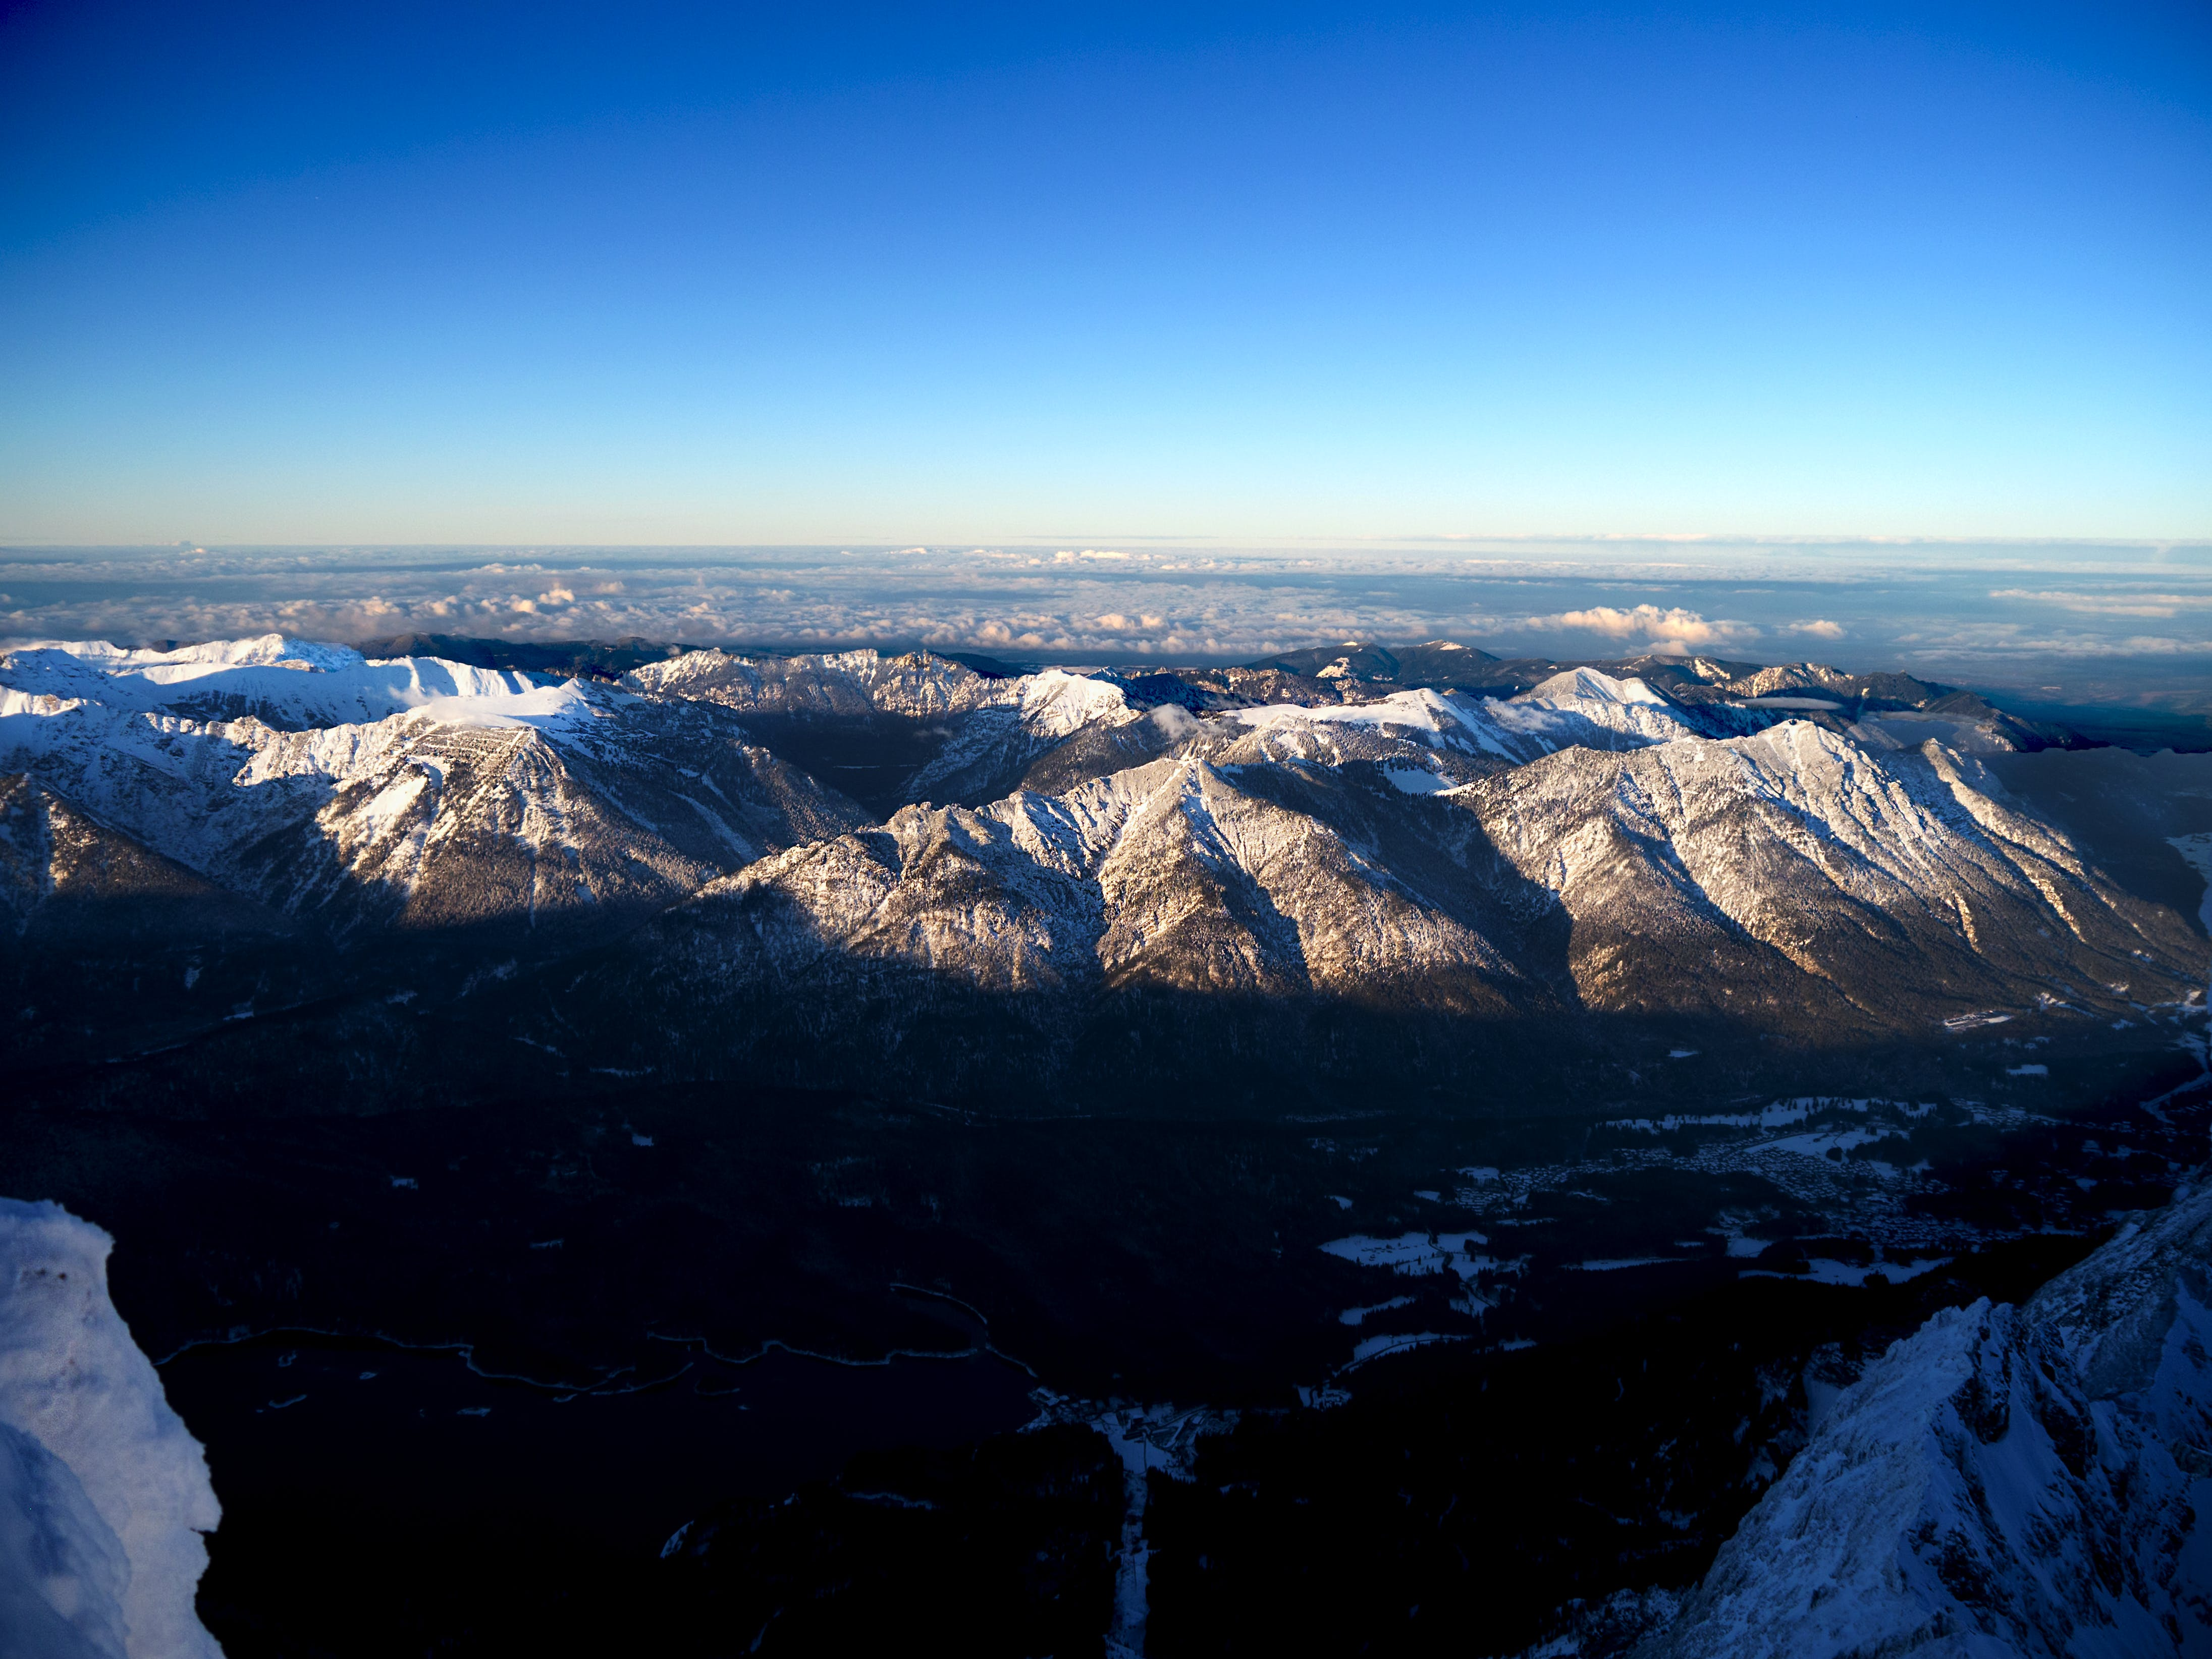 Aerial Photo of Snow Capped Mountains